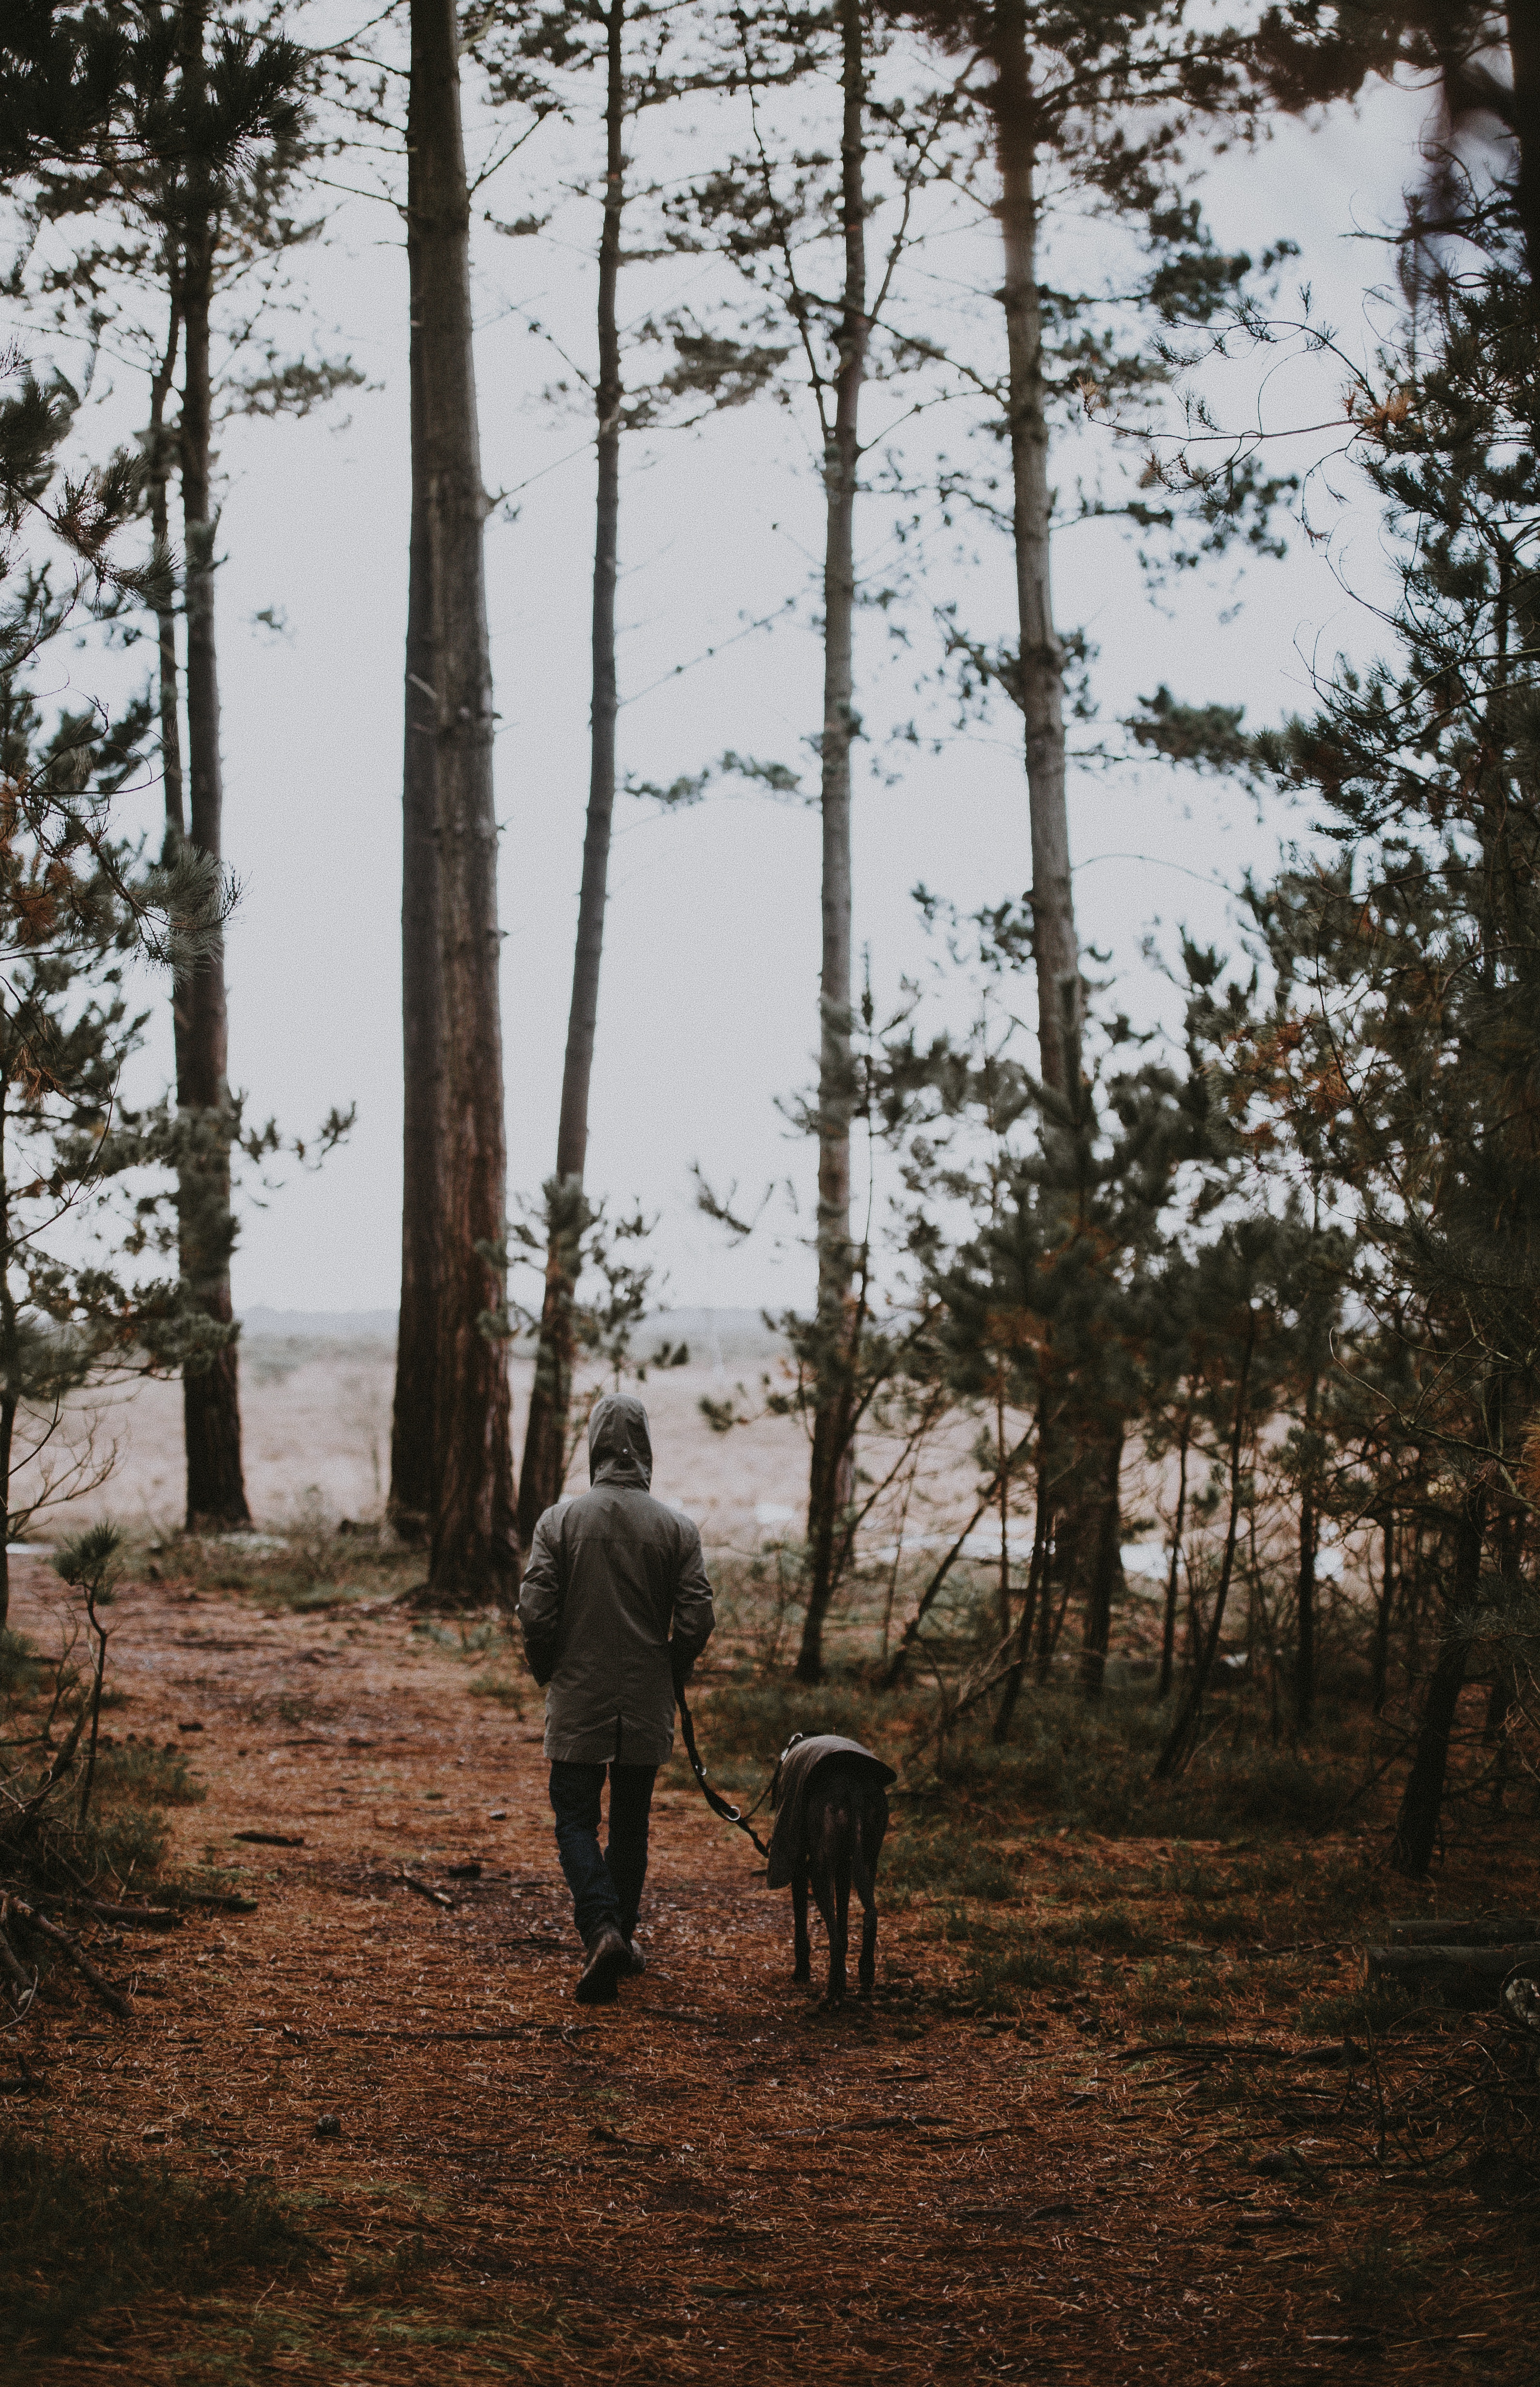 Man walking his dog in the woods